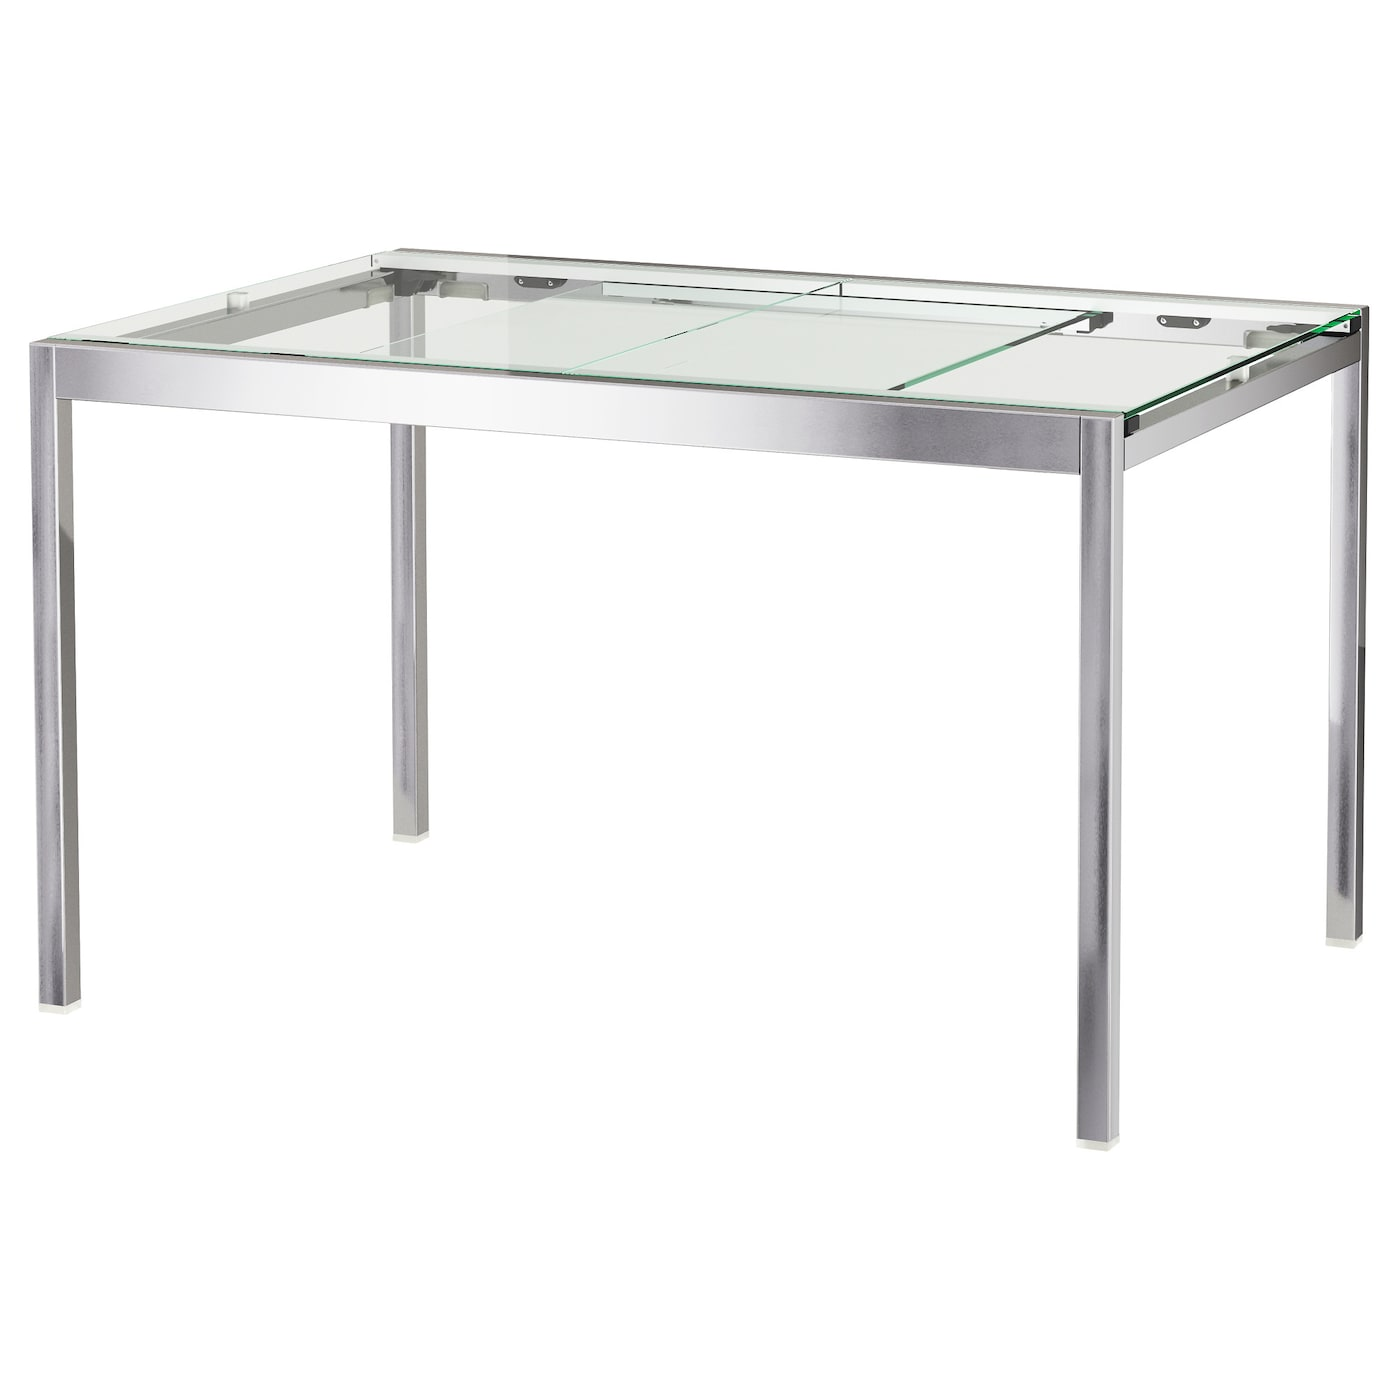 Ikea dining tables ikea ireland dublin for Table cuisine professionnelle inox